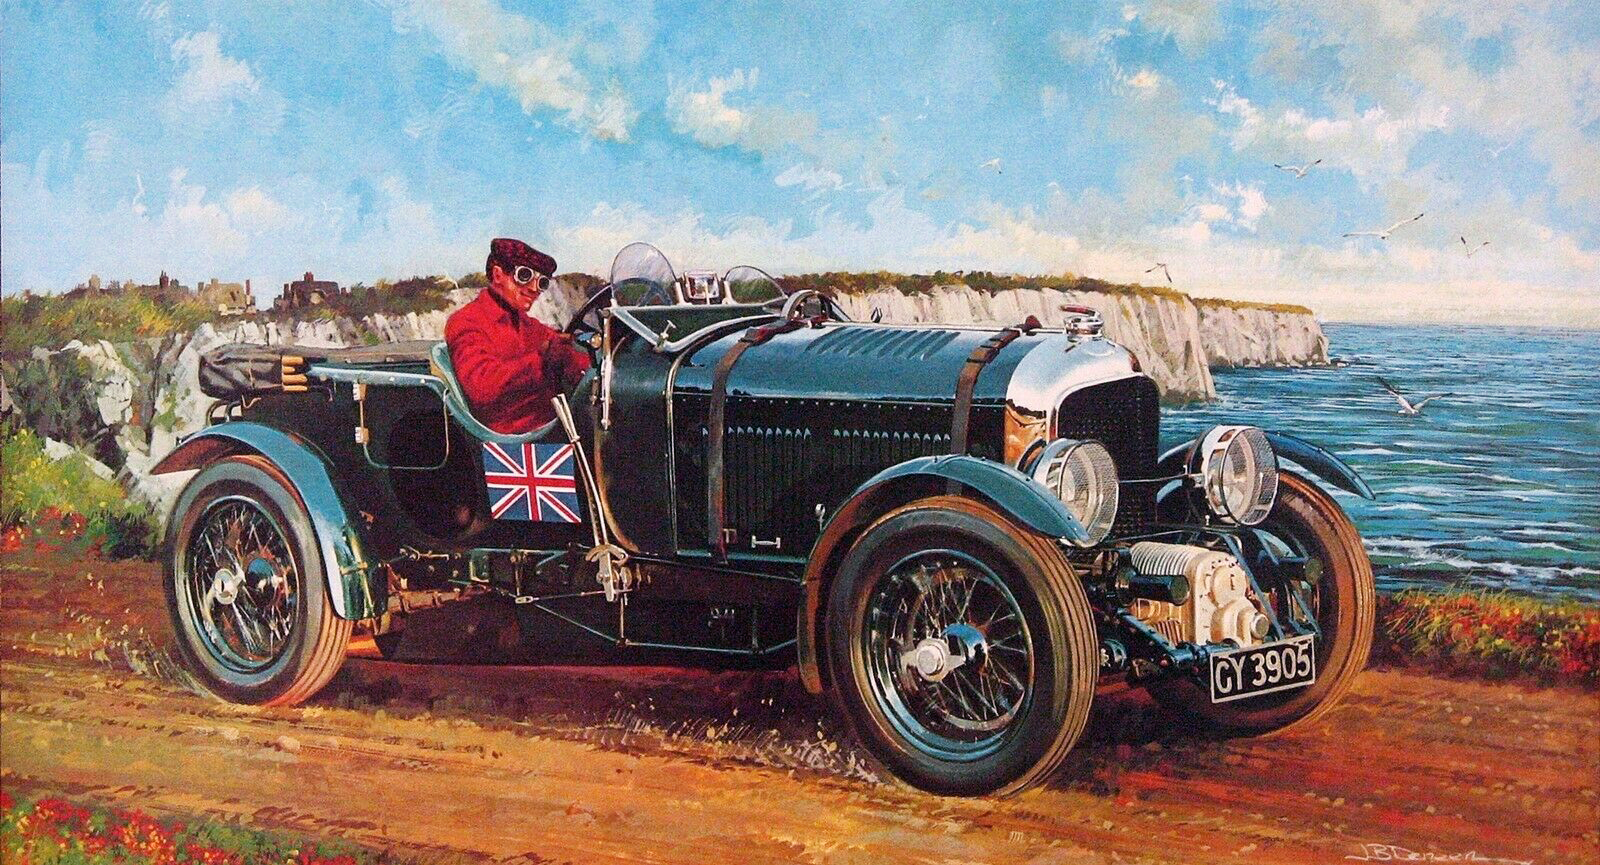 1930. Bentley Blower 4_5 Litre Supercharged. Illustrated by James B. Deneen